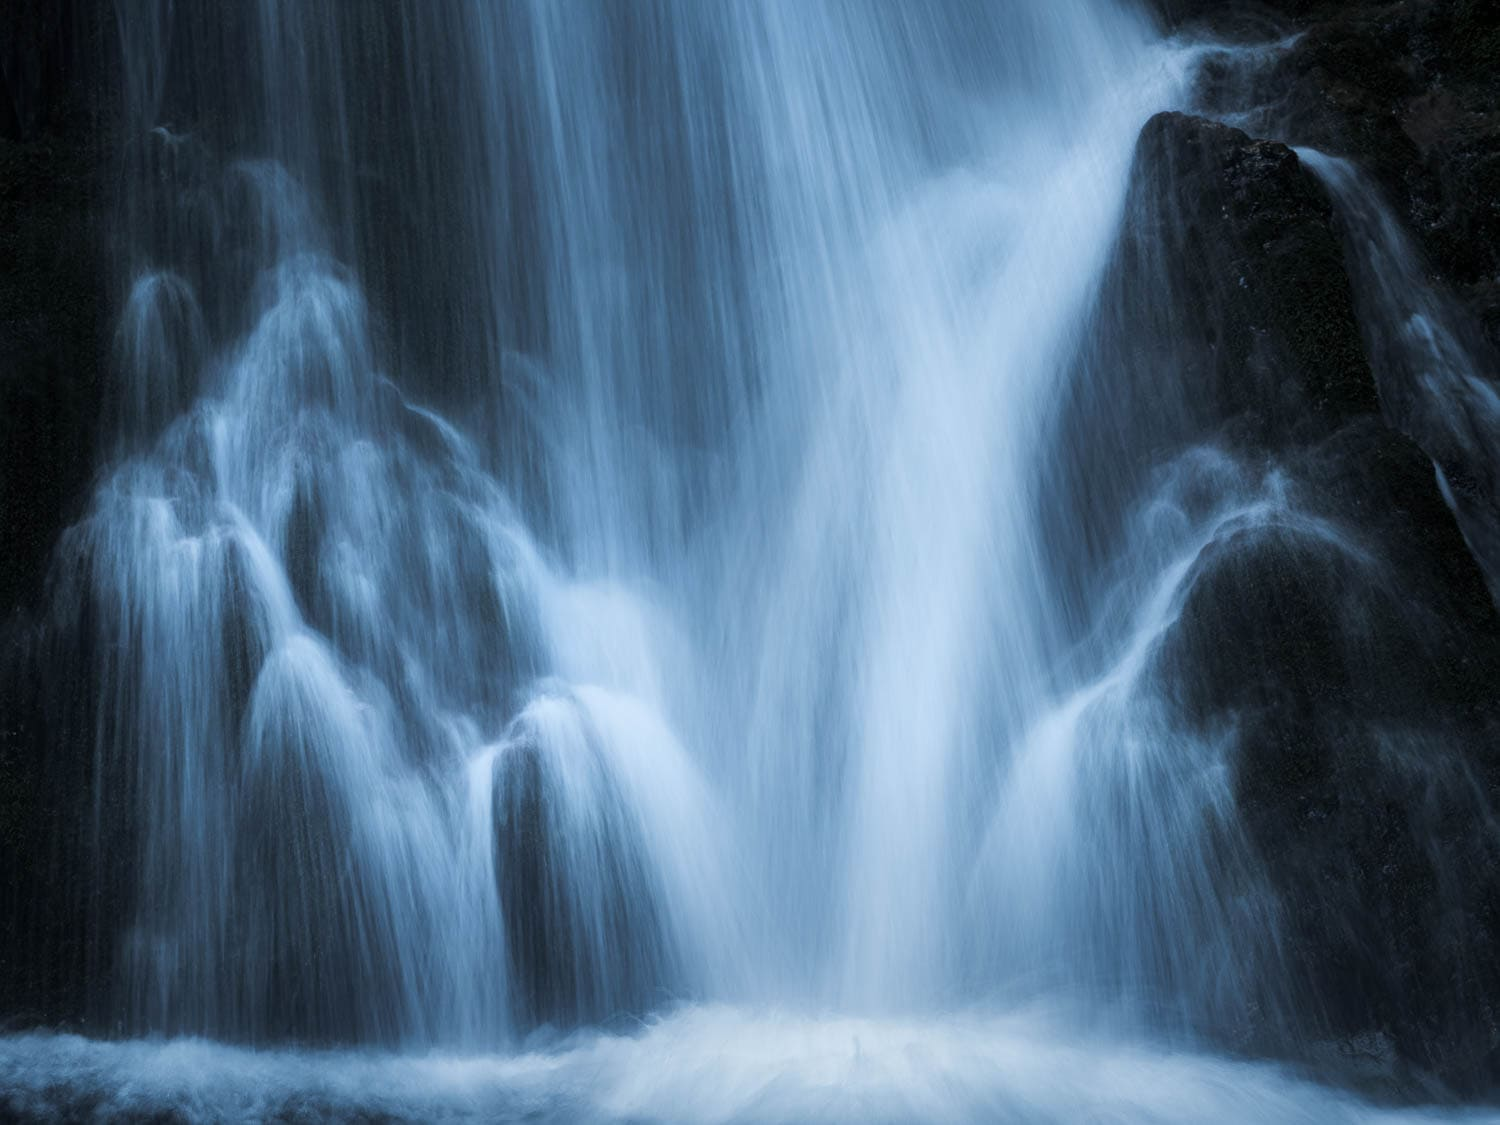 Small detailed section of waterfall with soft blue tones